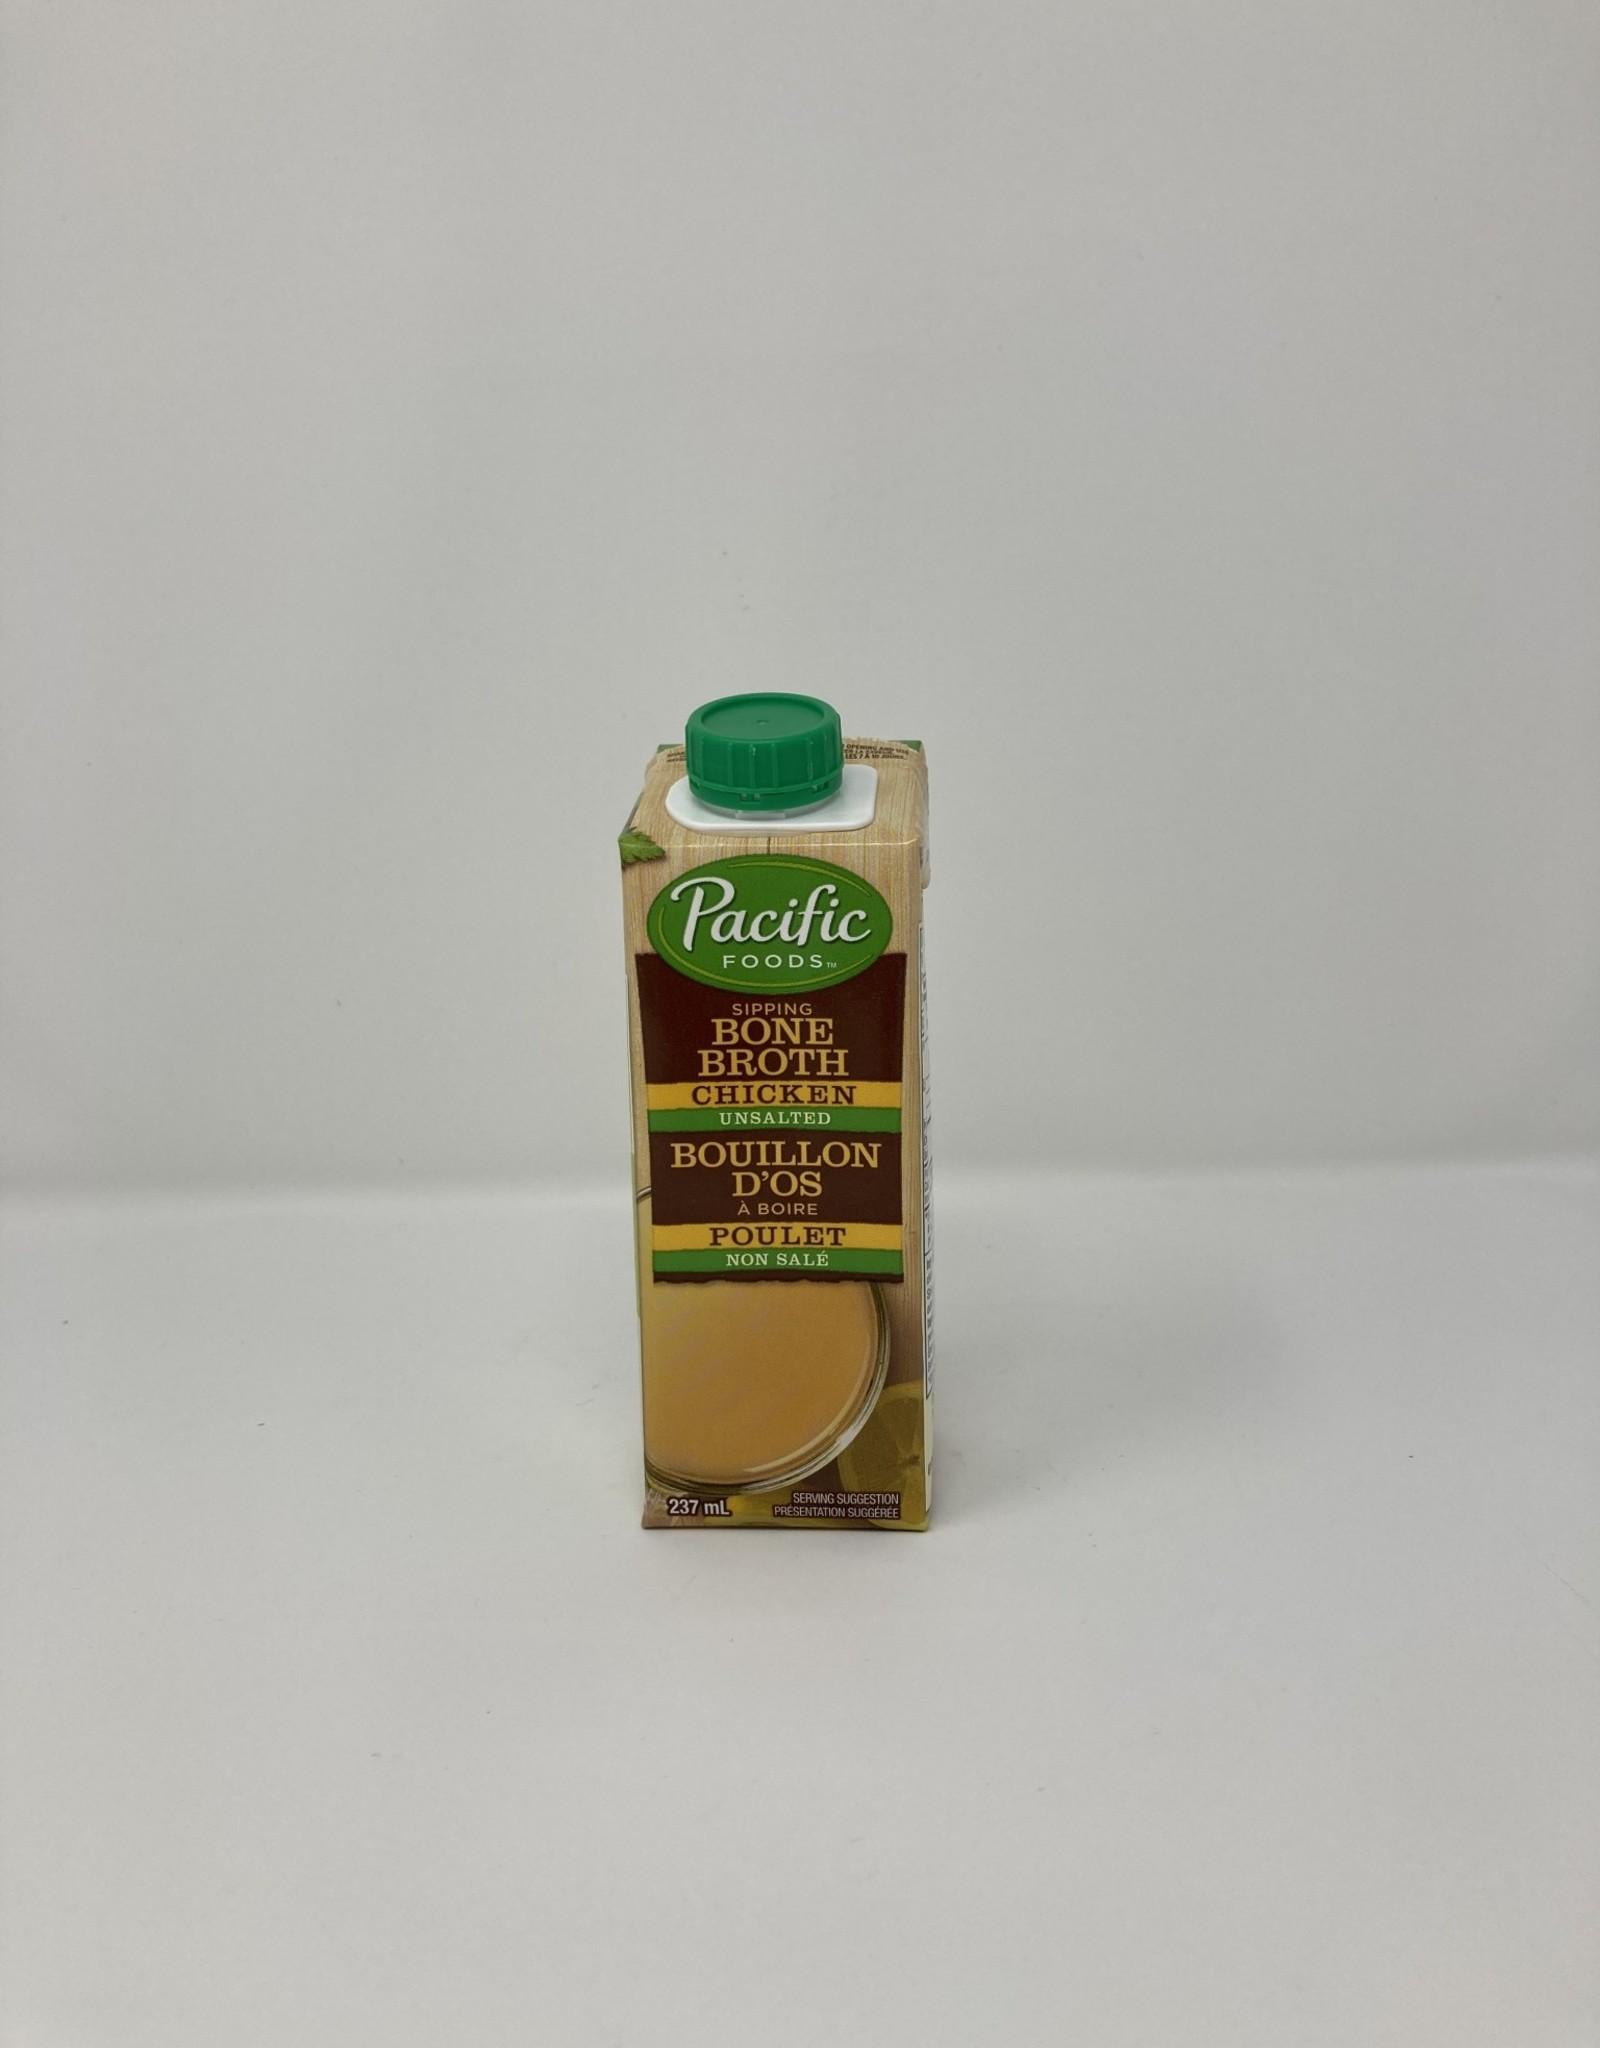 Pacific Foods Pacific Foods - Bone Broth, Chicken Unsalted (237ml)